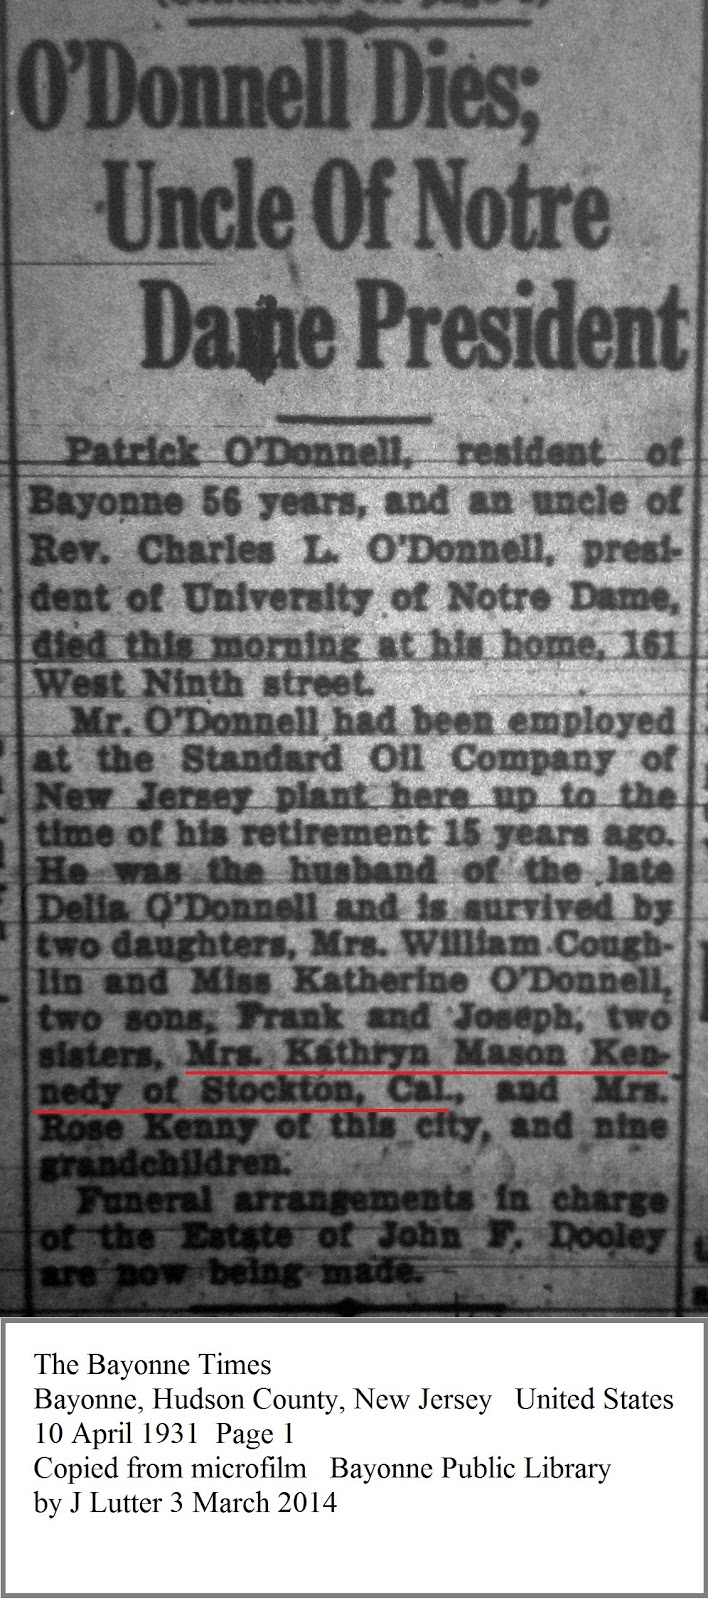 Family history research by jody july 2015 this obituary was printed in 1931 so i looked in the 1930 federal census for kathryn mason kennedy in stockton california aiddatafo Gallery